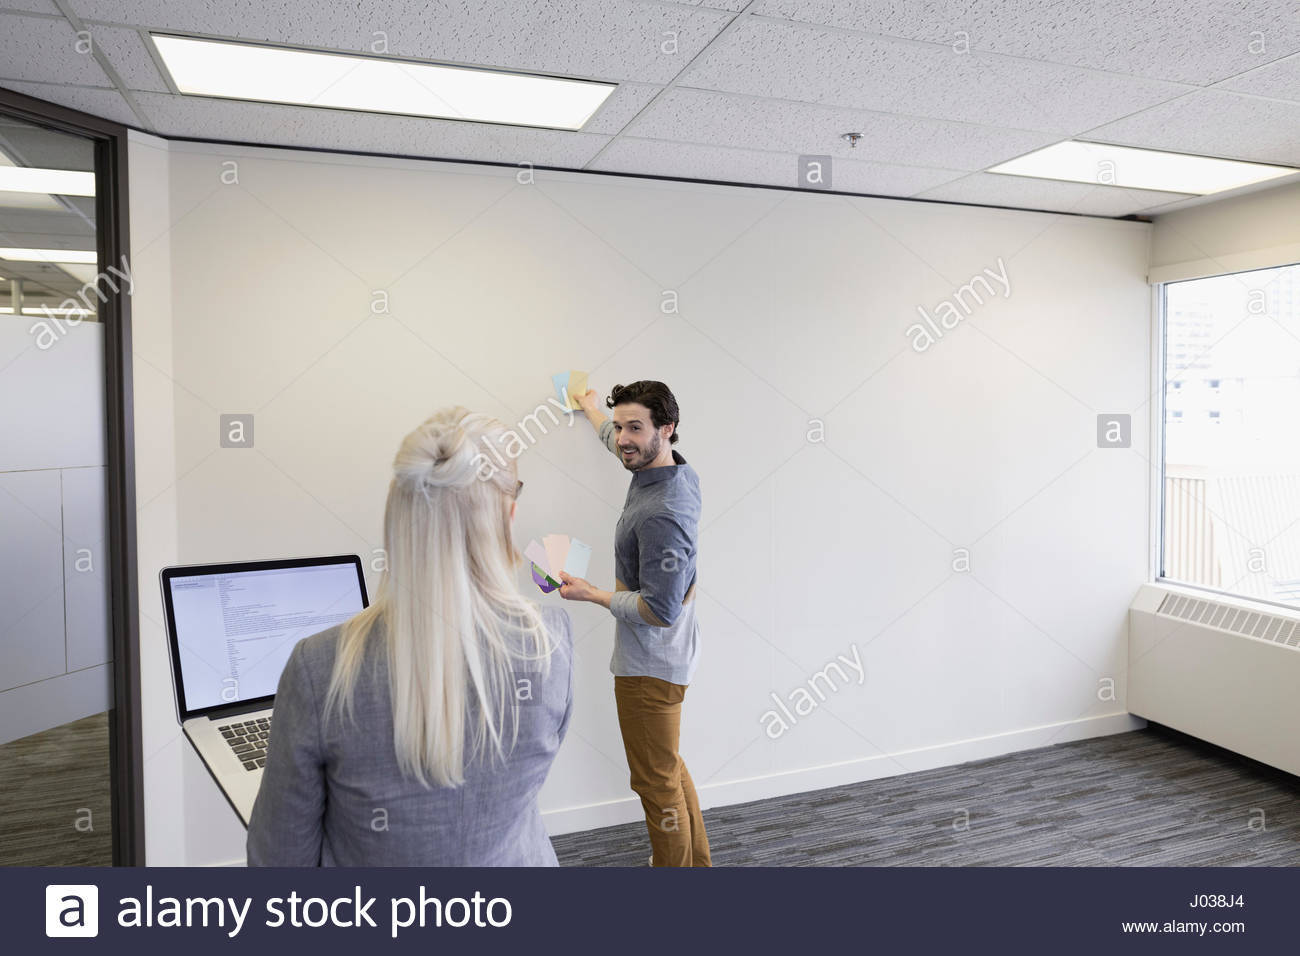 Business People Viewing Paint Swatches On Wall In Empty New Office